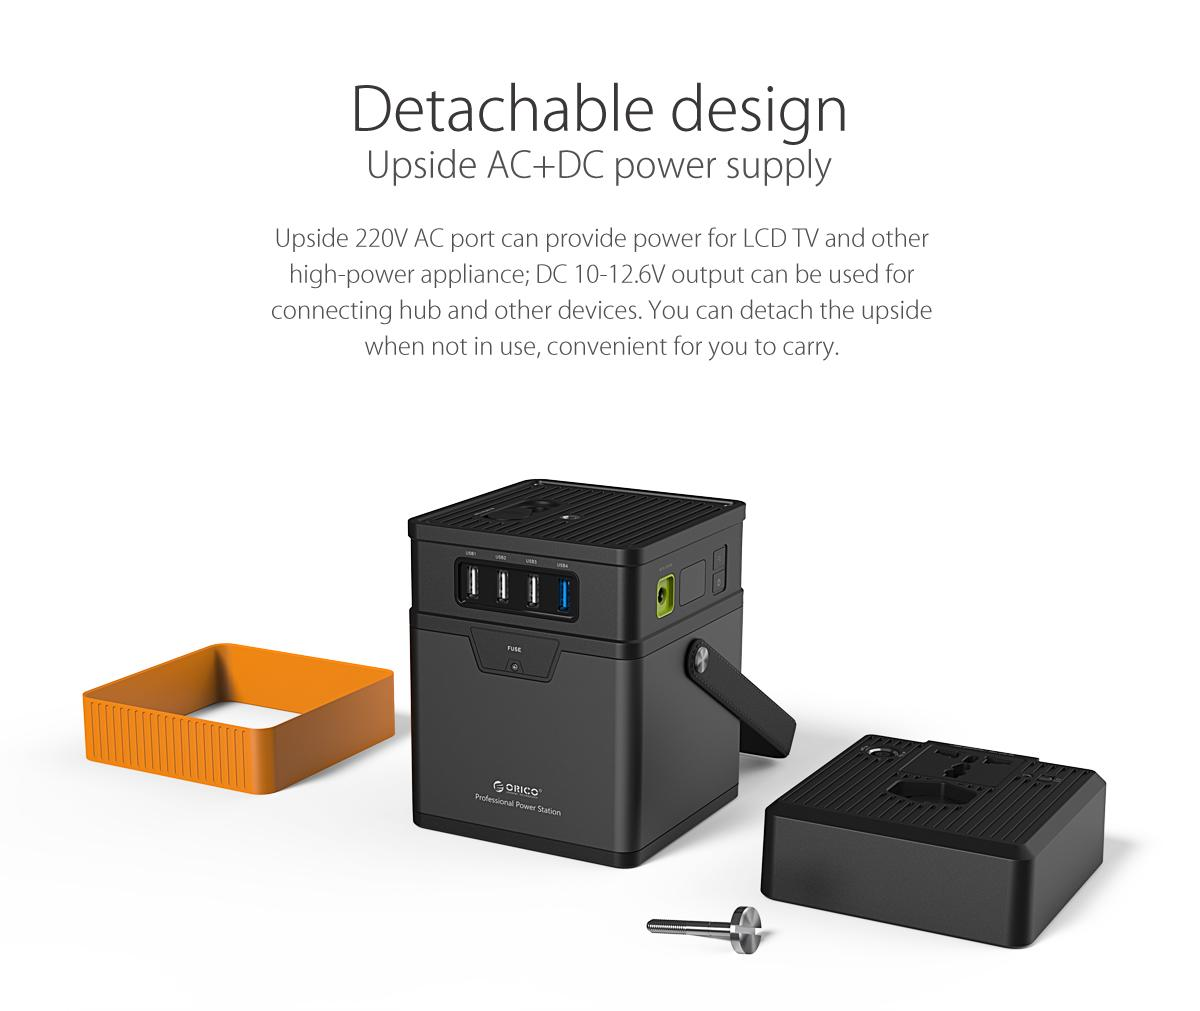 detachable design,upside AC+DC power supply